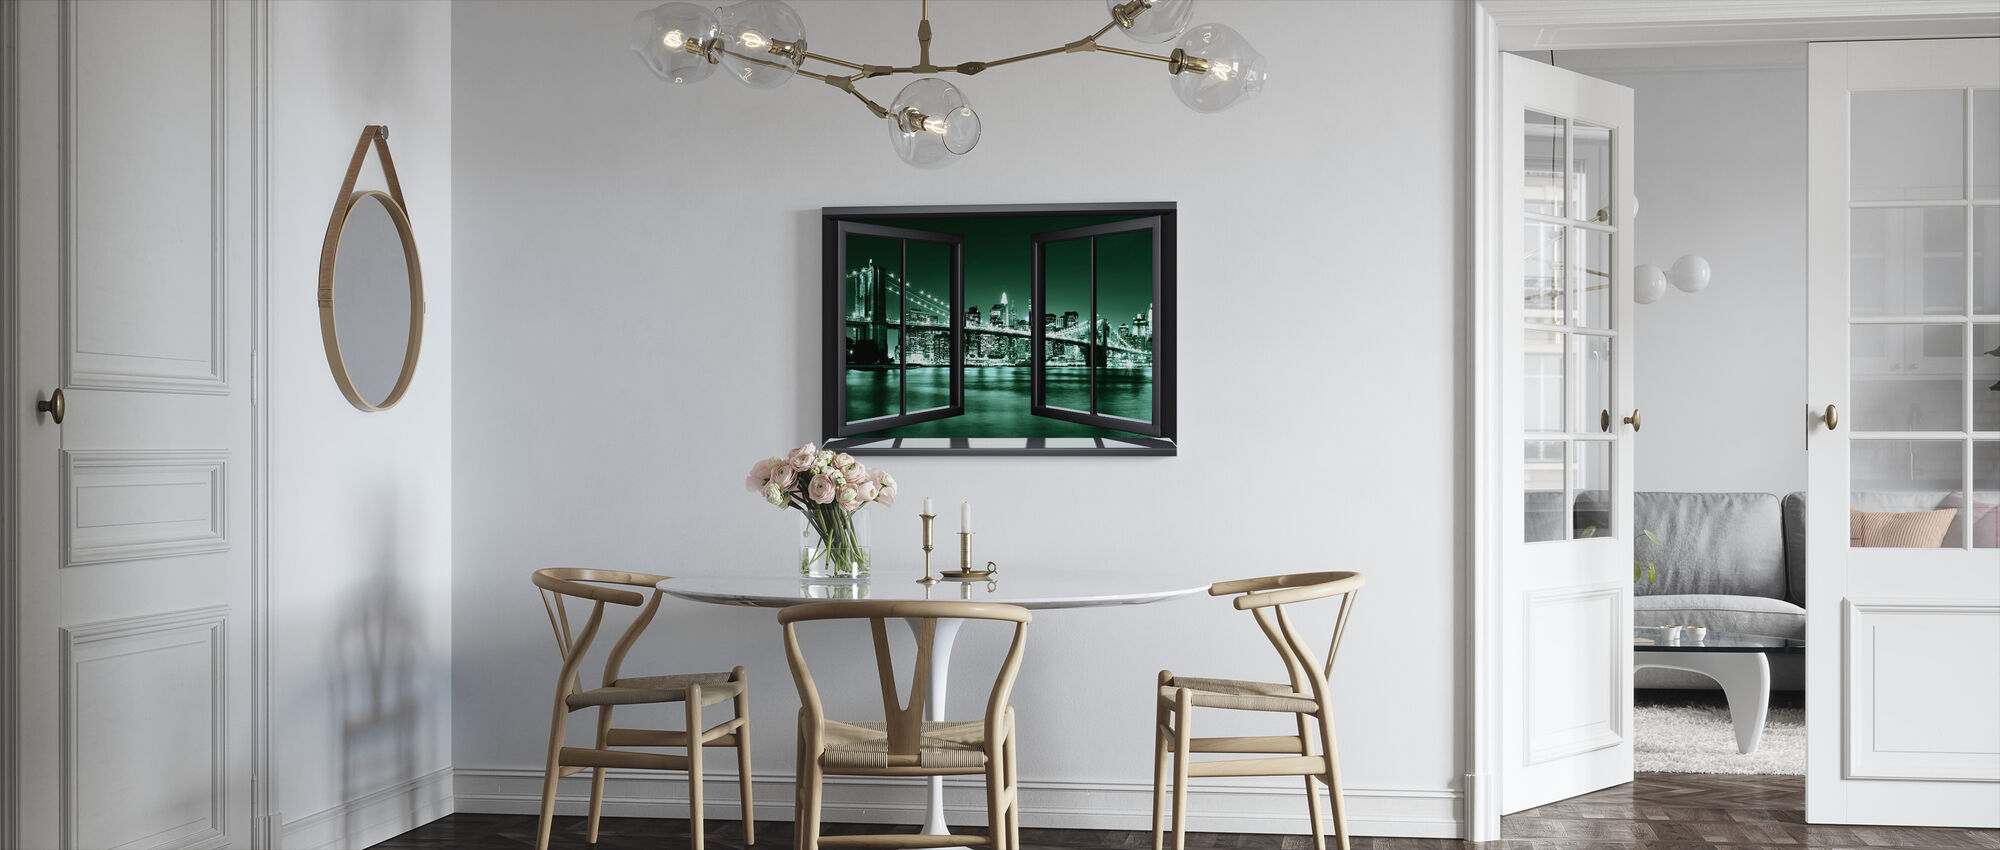 Brooklyn brug door raam - groen - Canvas print - Keuken